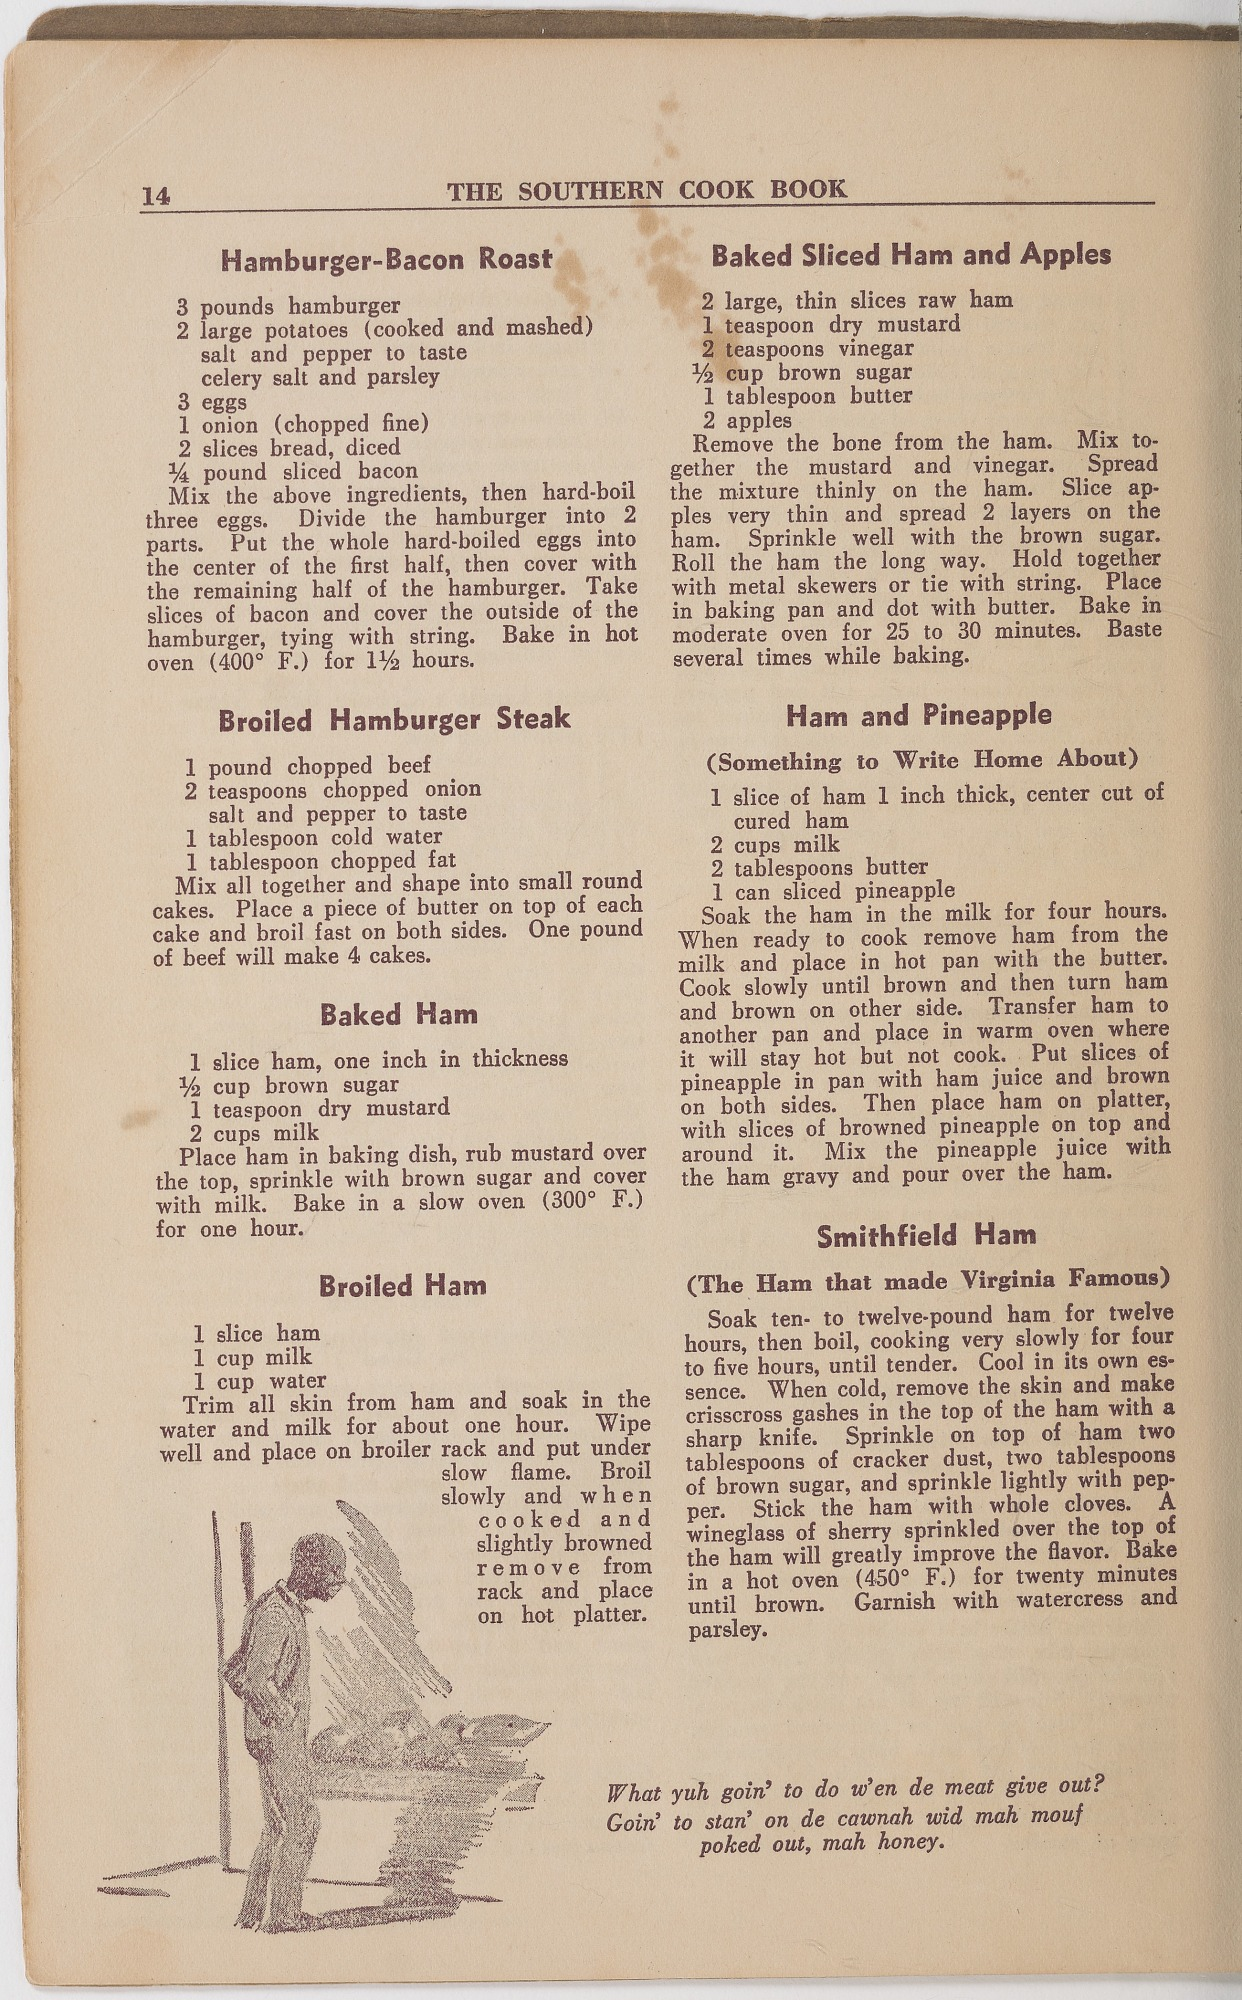 View <I>Southern Cook Book of Fine Old Dixie Recipes</I> digital asset number 16